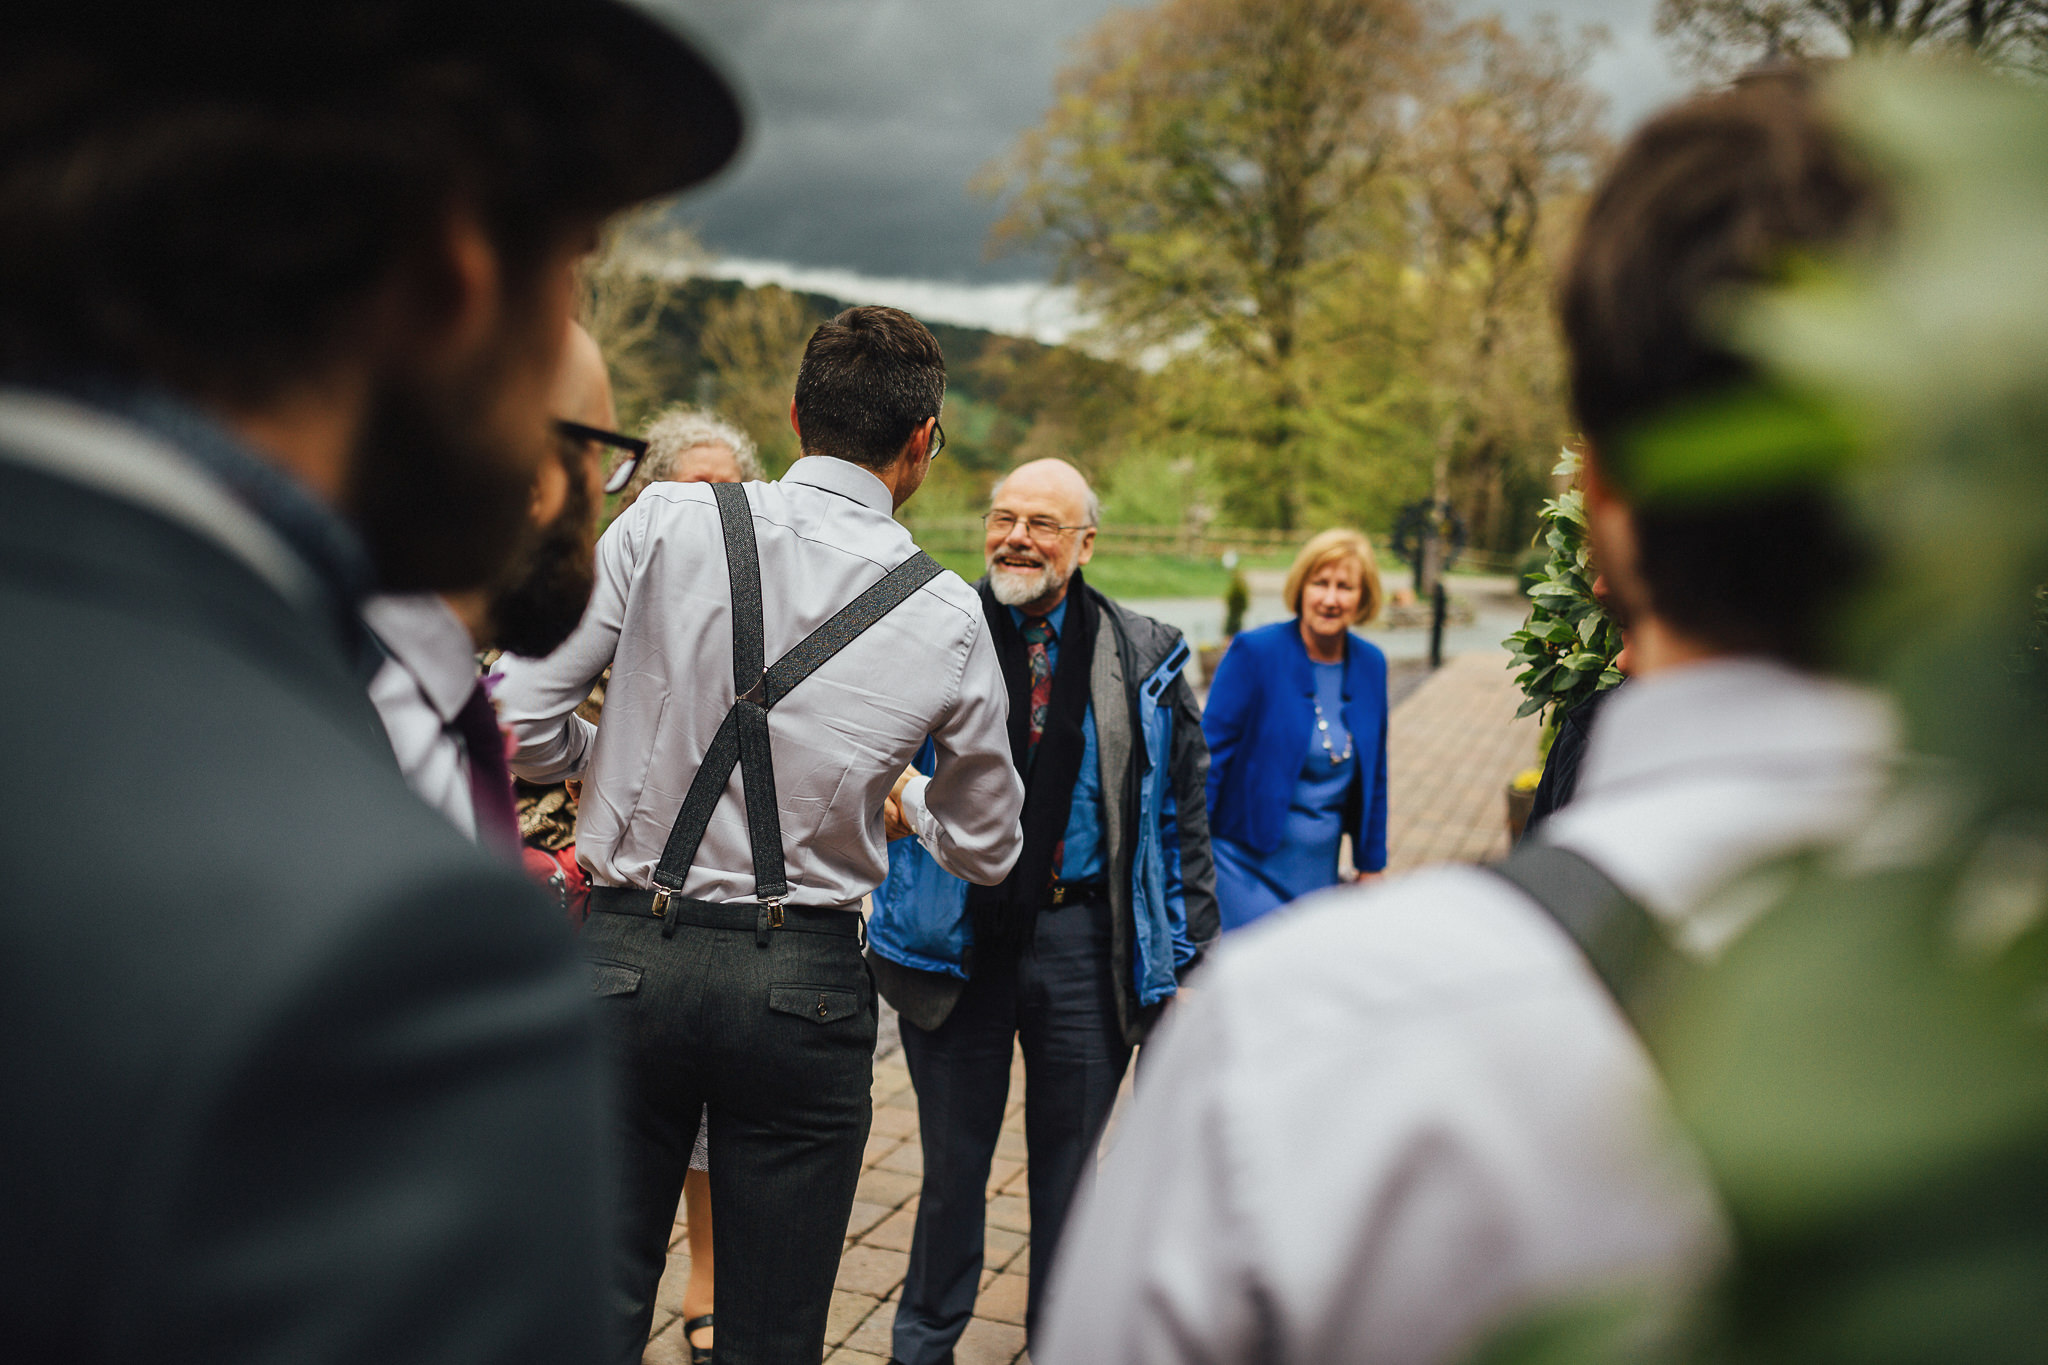 plas-isaf-corwen-north wales wedding-photography-photographer-91018